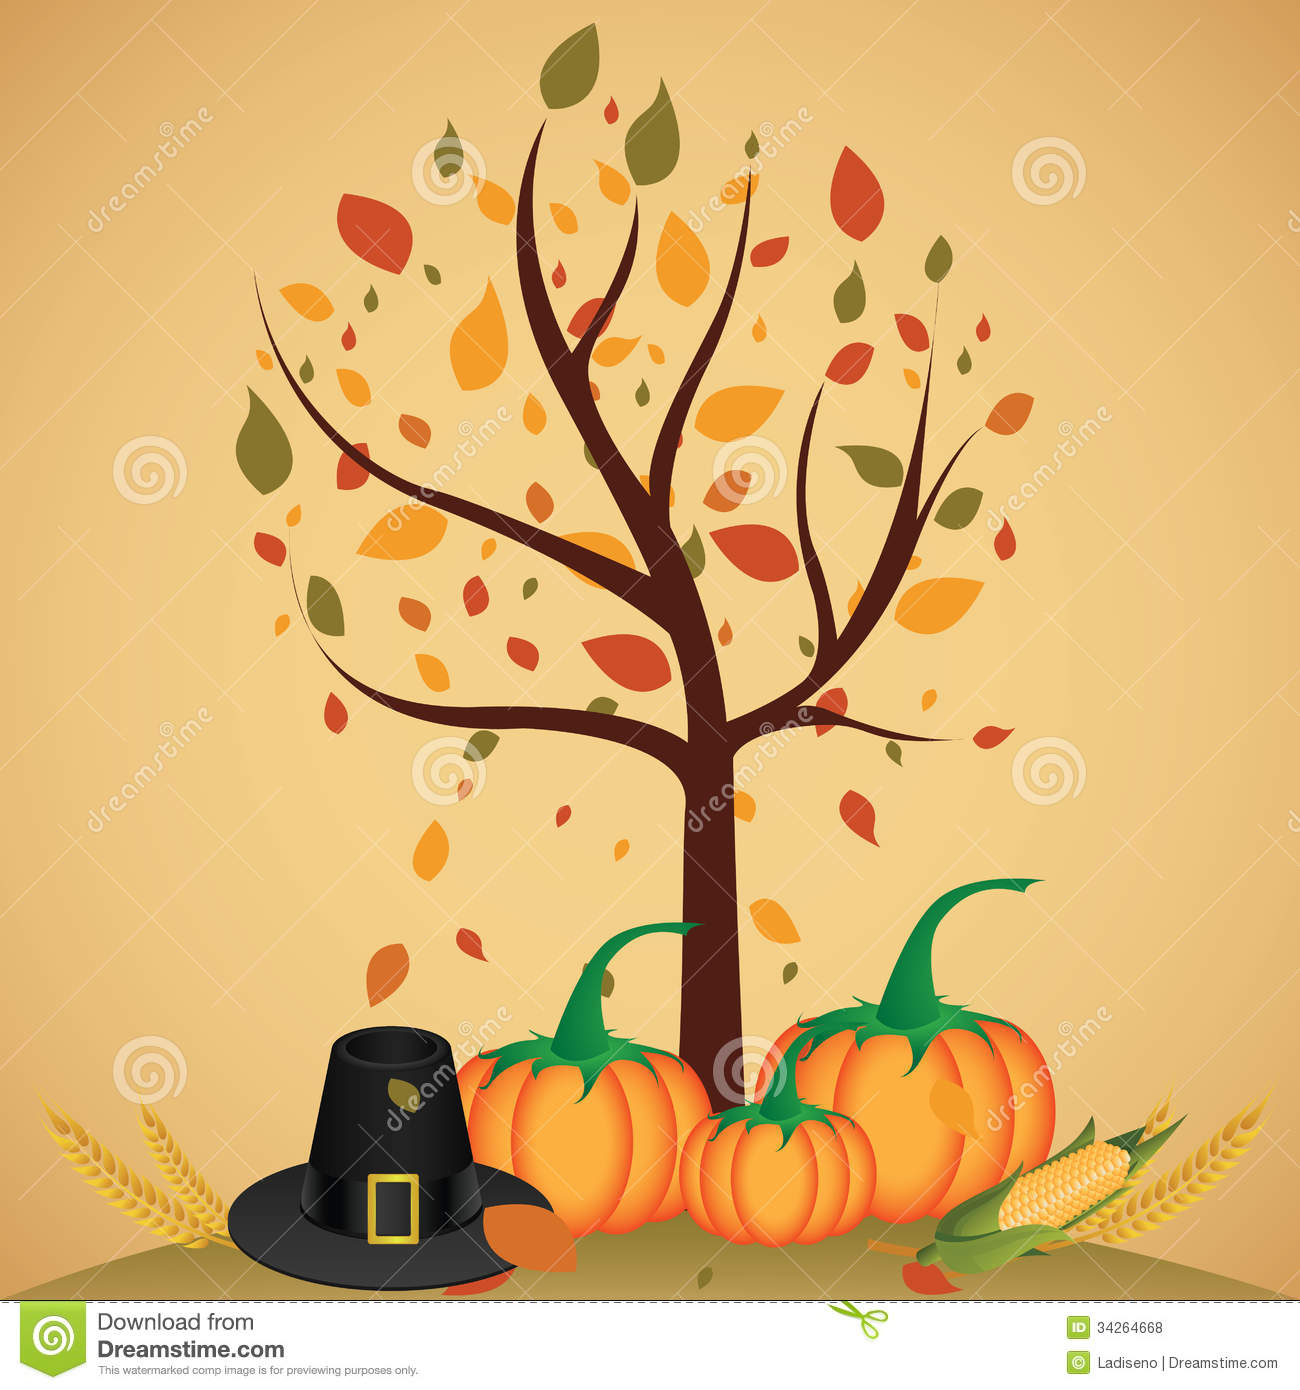 Fall Wallpaper With Owls Thanksgiving Day Royalty Free Stock Photos Image 34264668